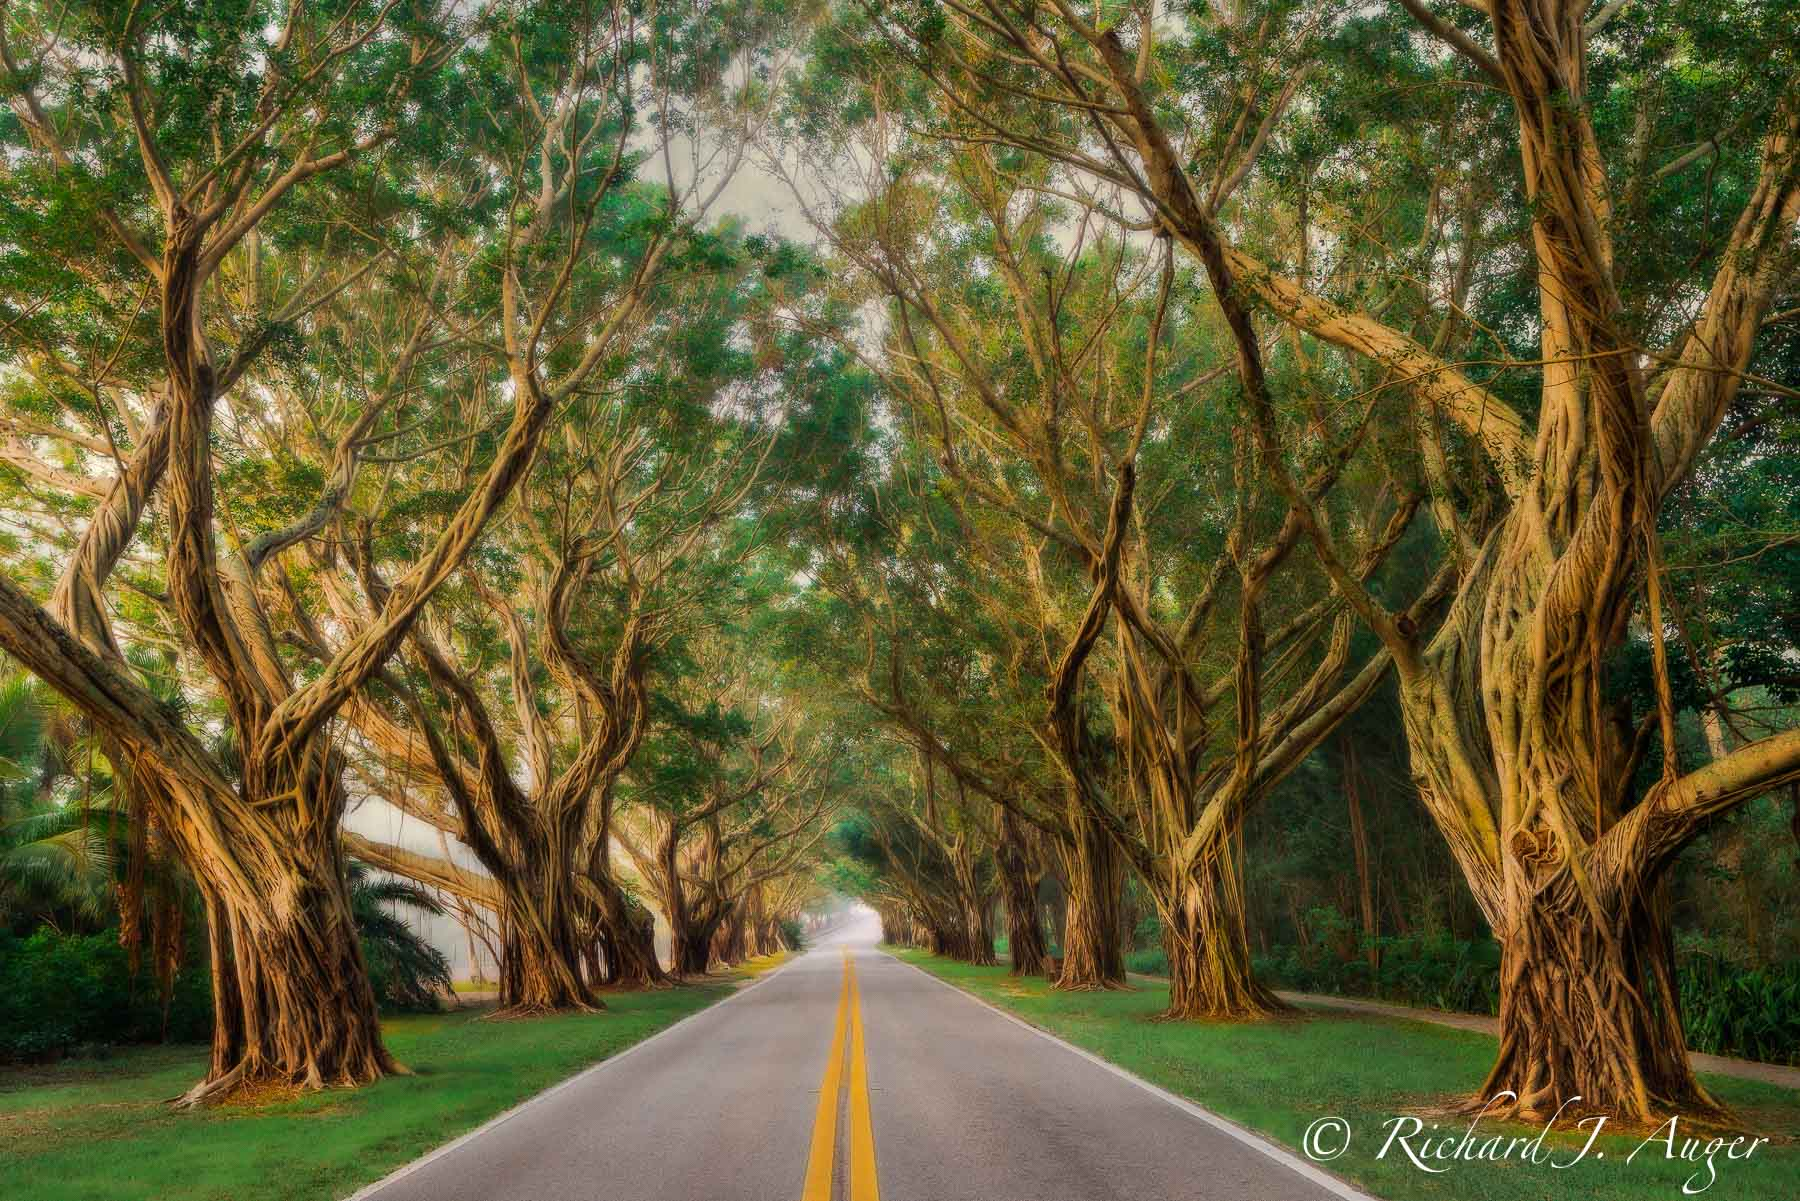 Bridge Road, Banyan Trees, Hobe Sound, Florida, Jupiter Island, Fog, Road, Morning